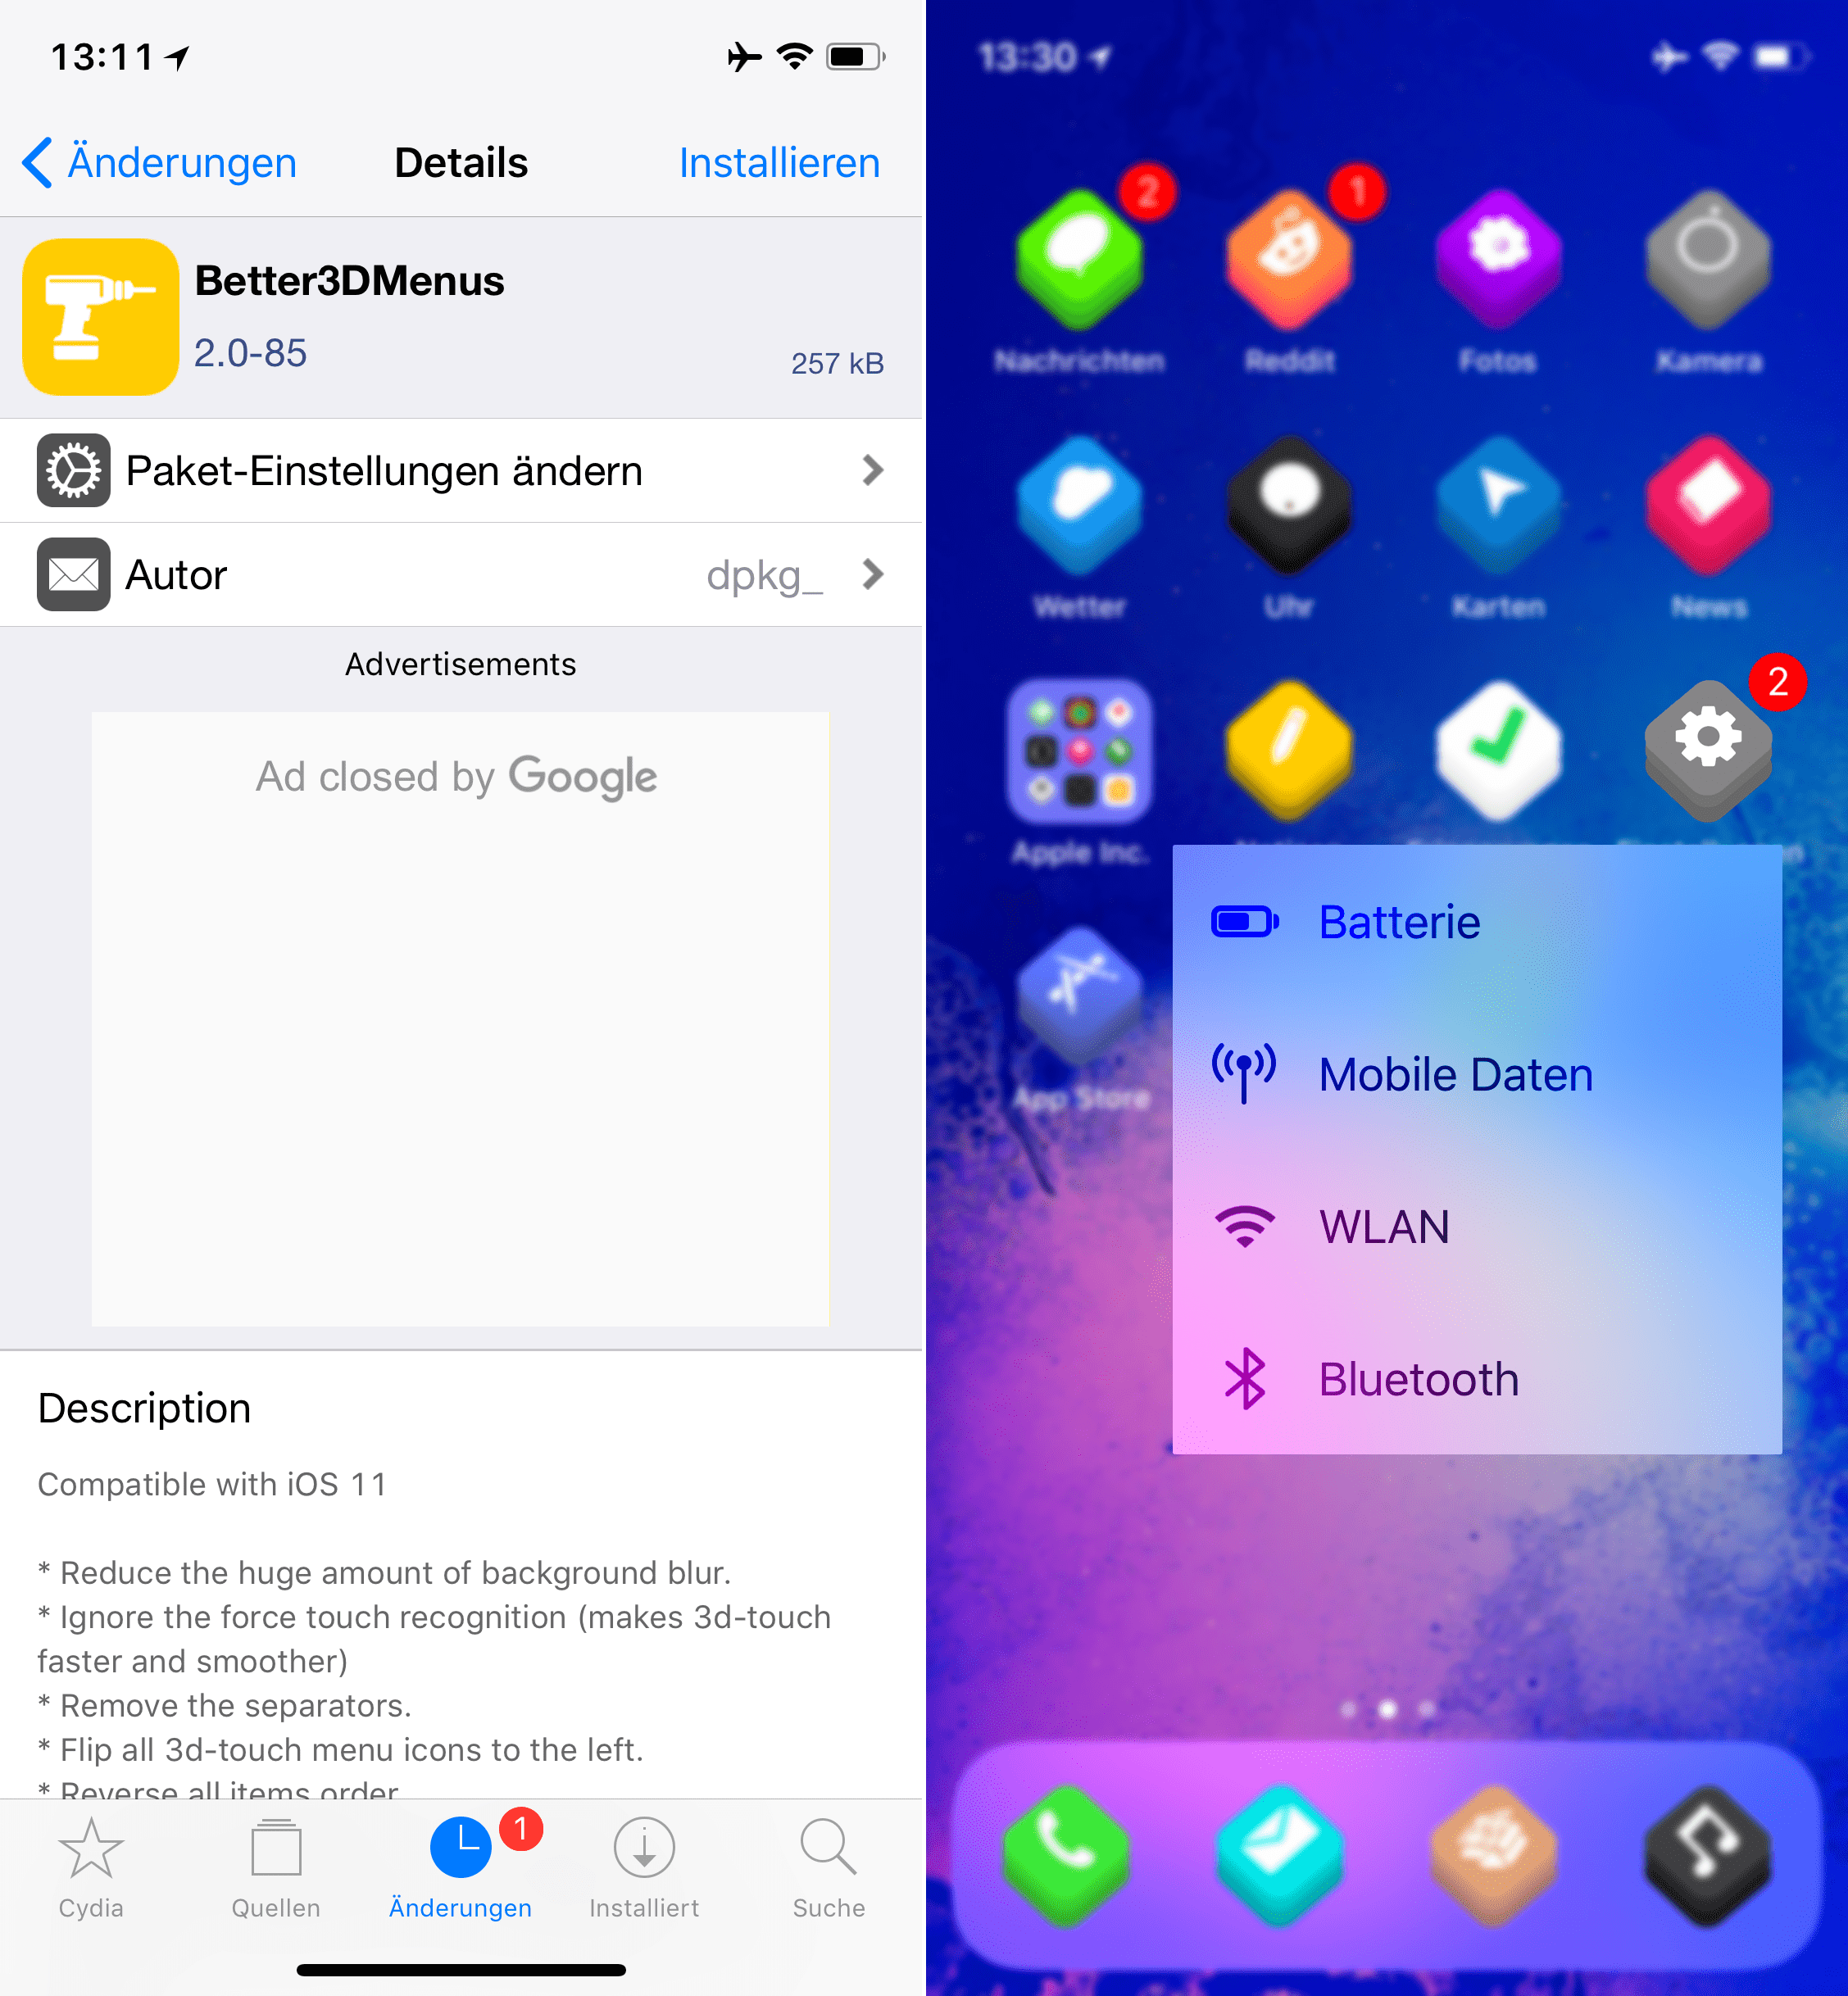 Customize 3DTouch menues, Better3DMenus, top, Cydia, Tweak, Sileo, Download, .deb, Hack4Life, Fabian Geissler